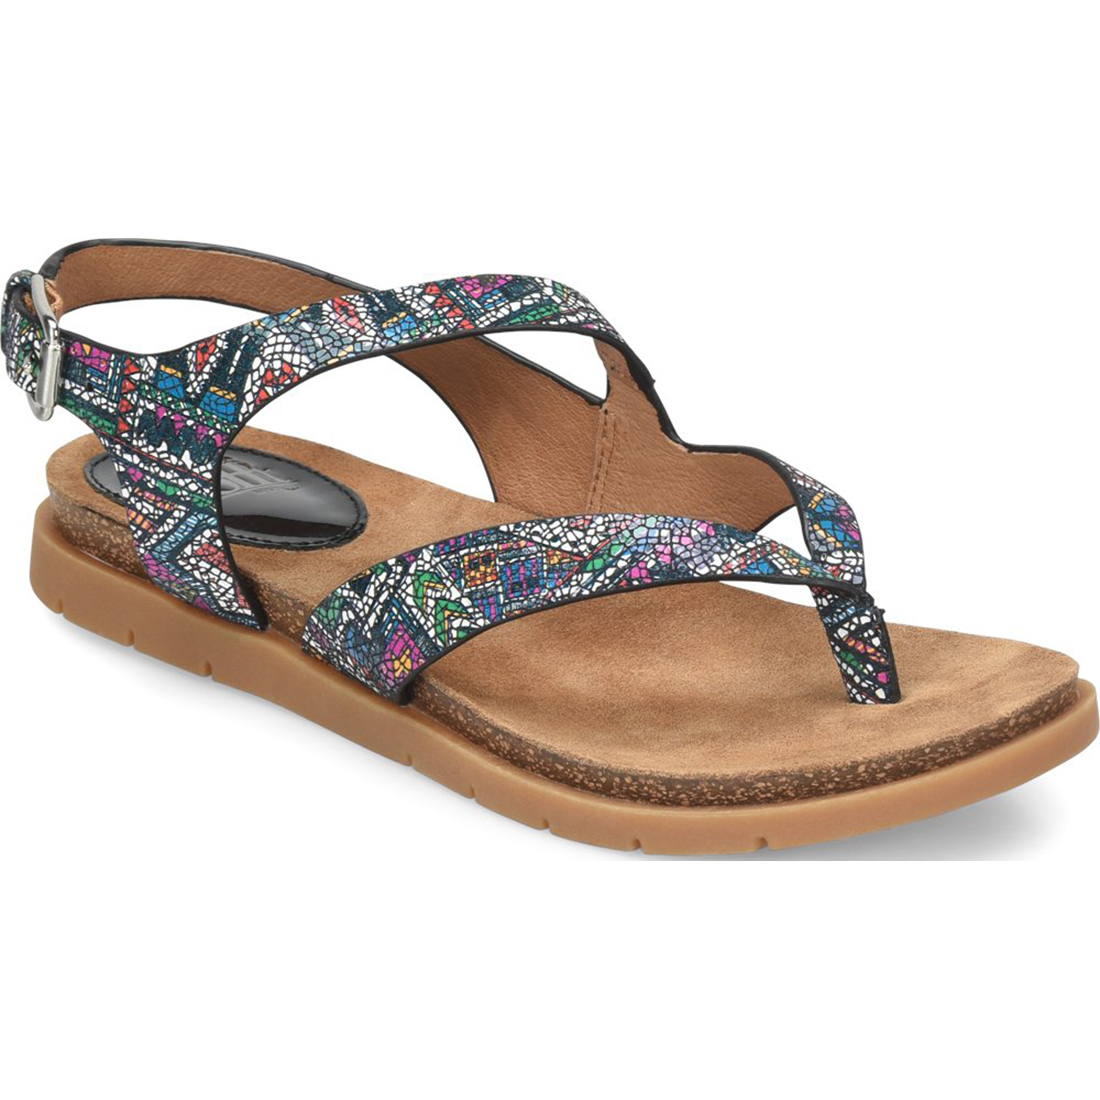 Sofft Womens Rory Economical, stylish, and eye-catching shoes